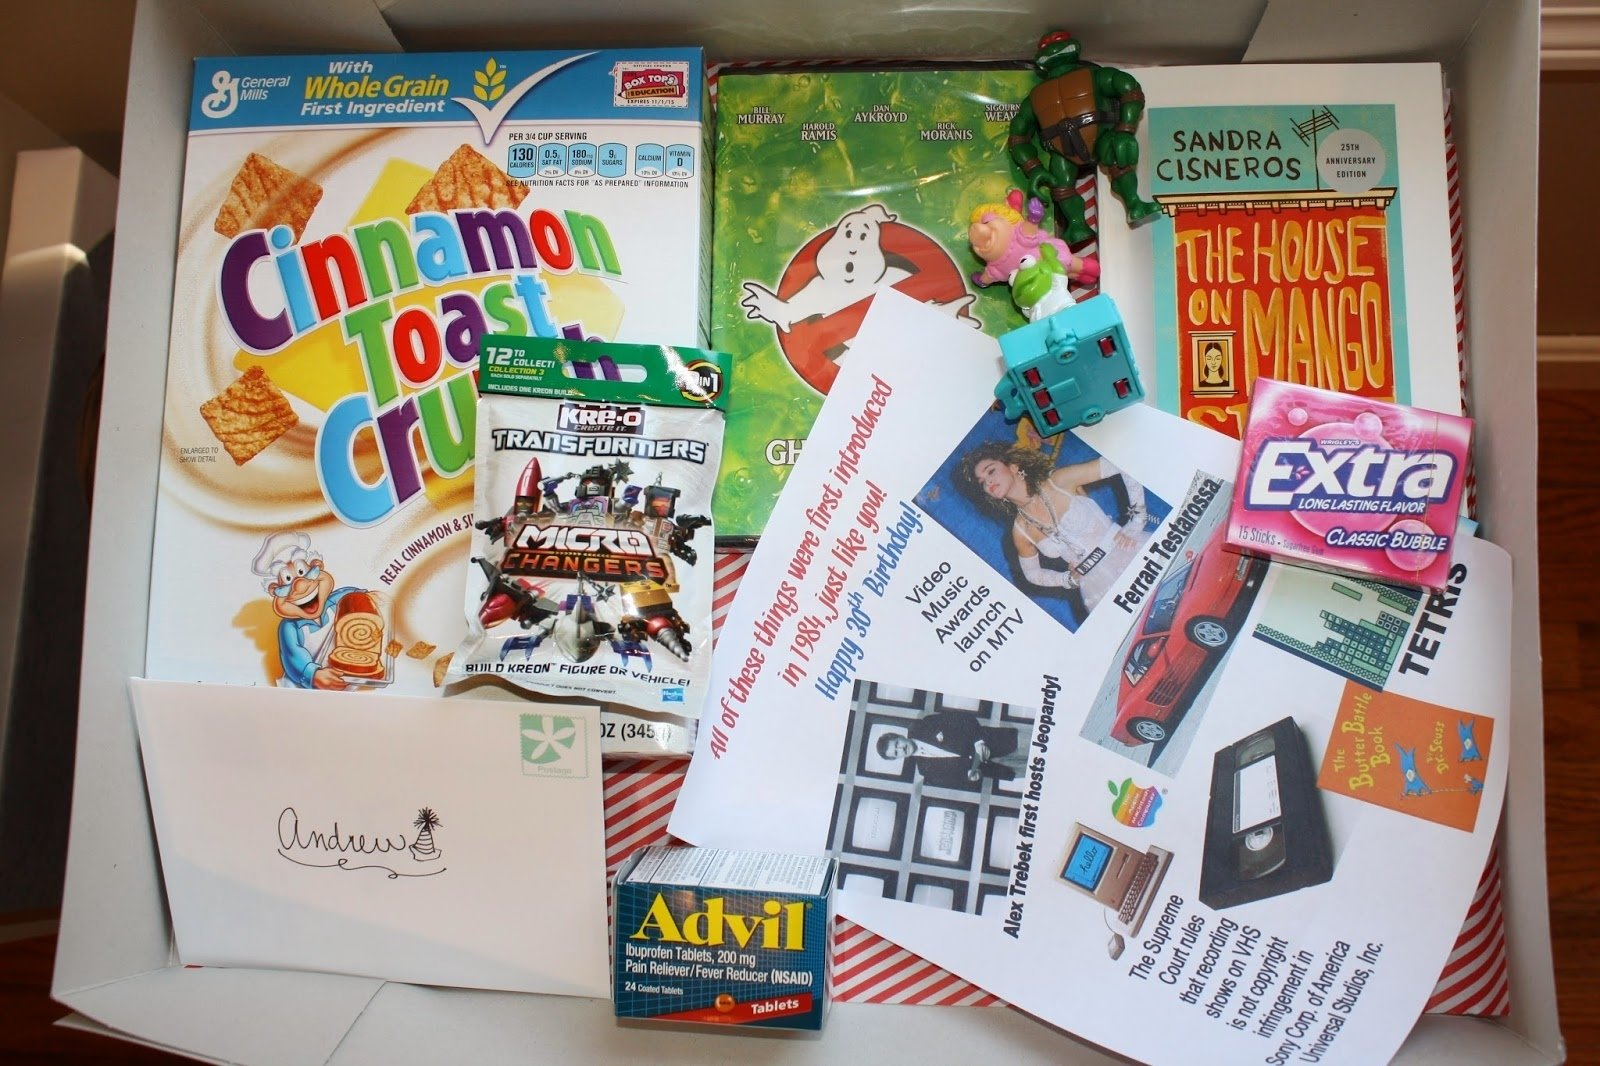 10 Awesome Gift Ideas For 30Th Birthday craft e magee 30th birthday gift idea 8 2020